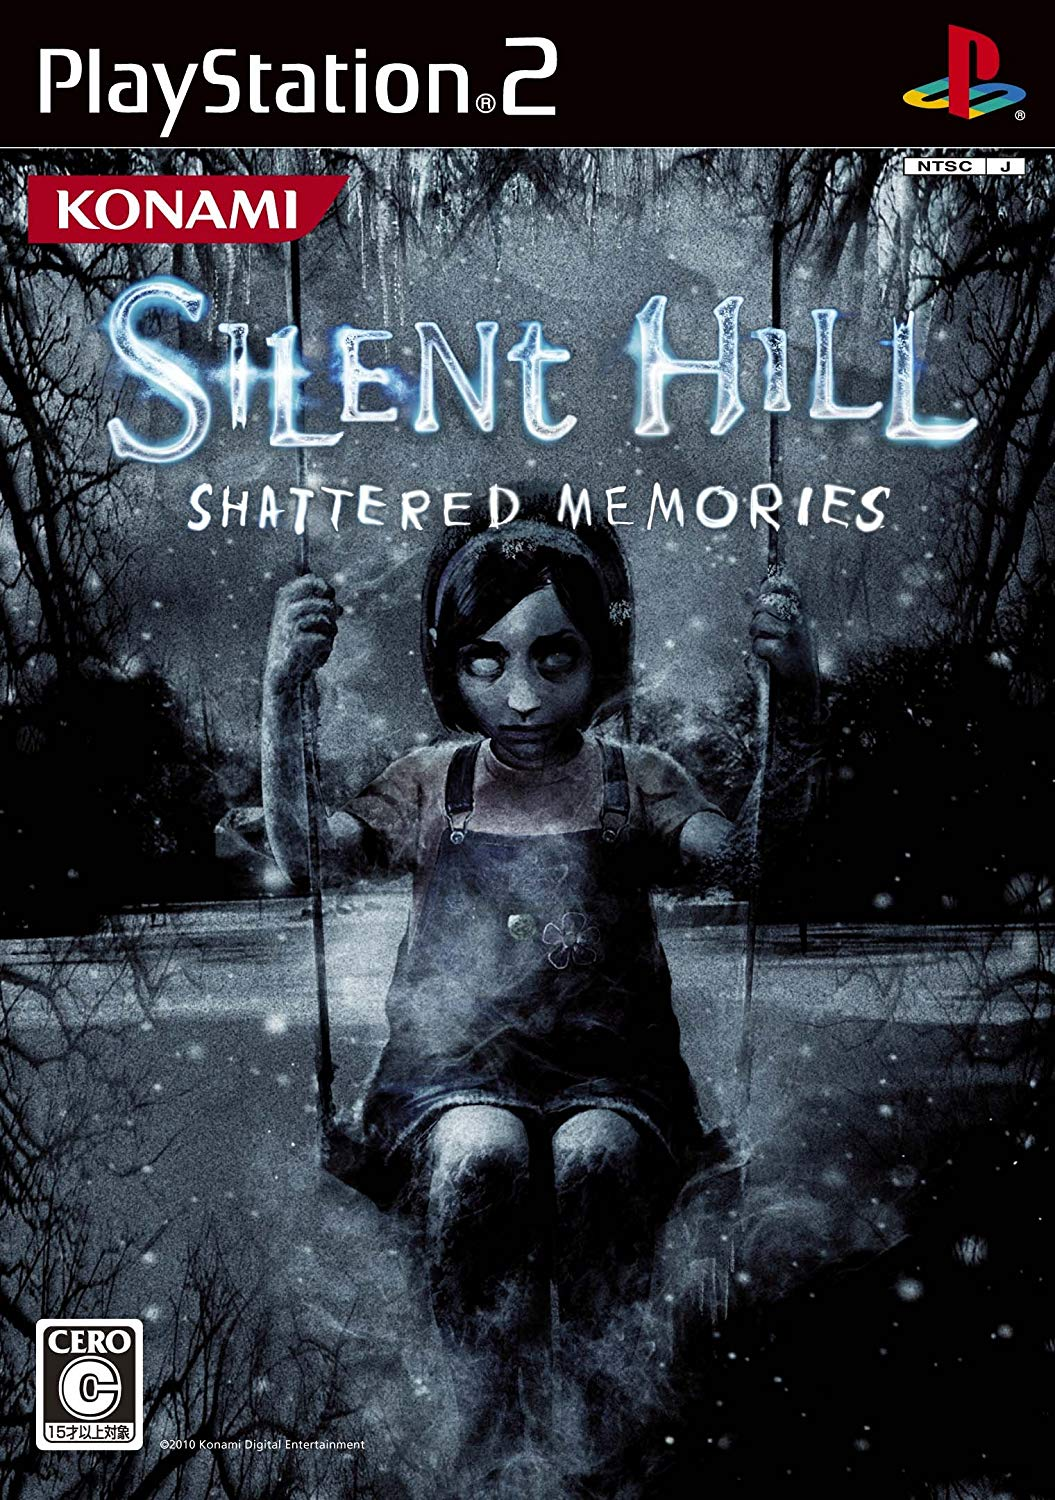 The story of Silent Hill